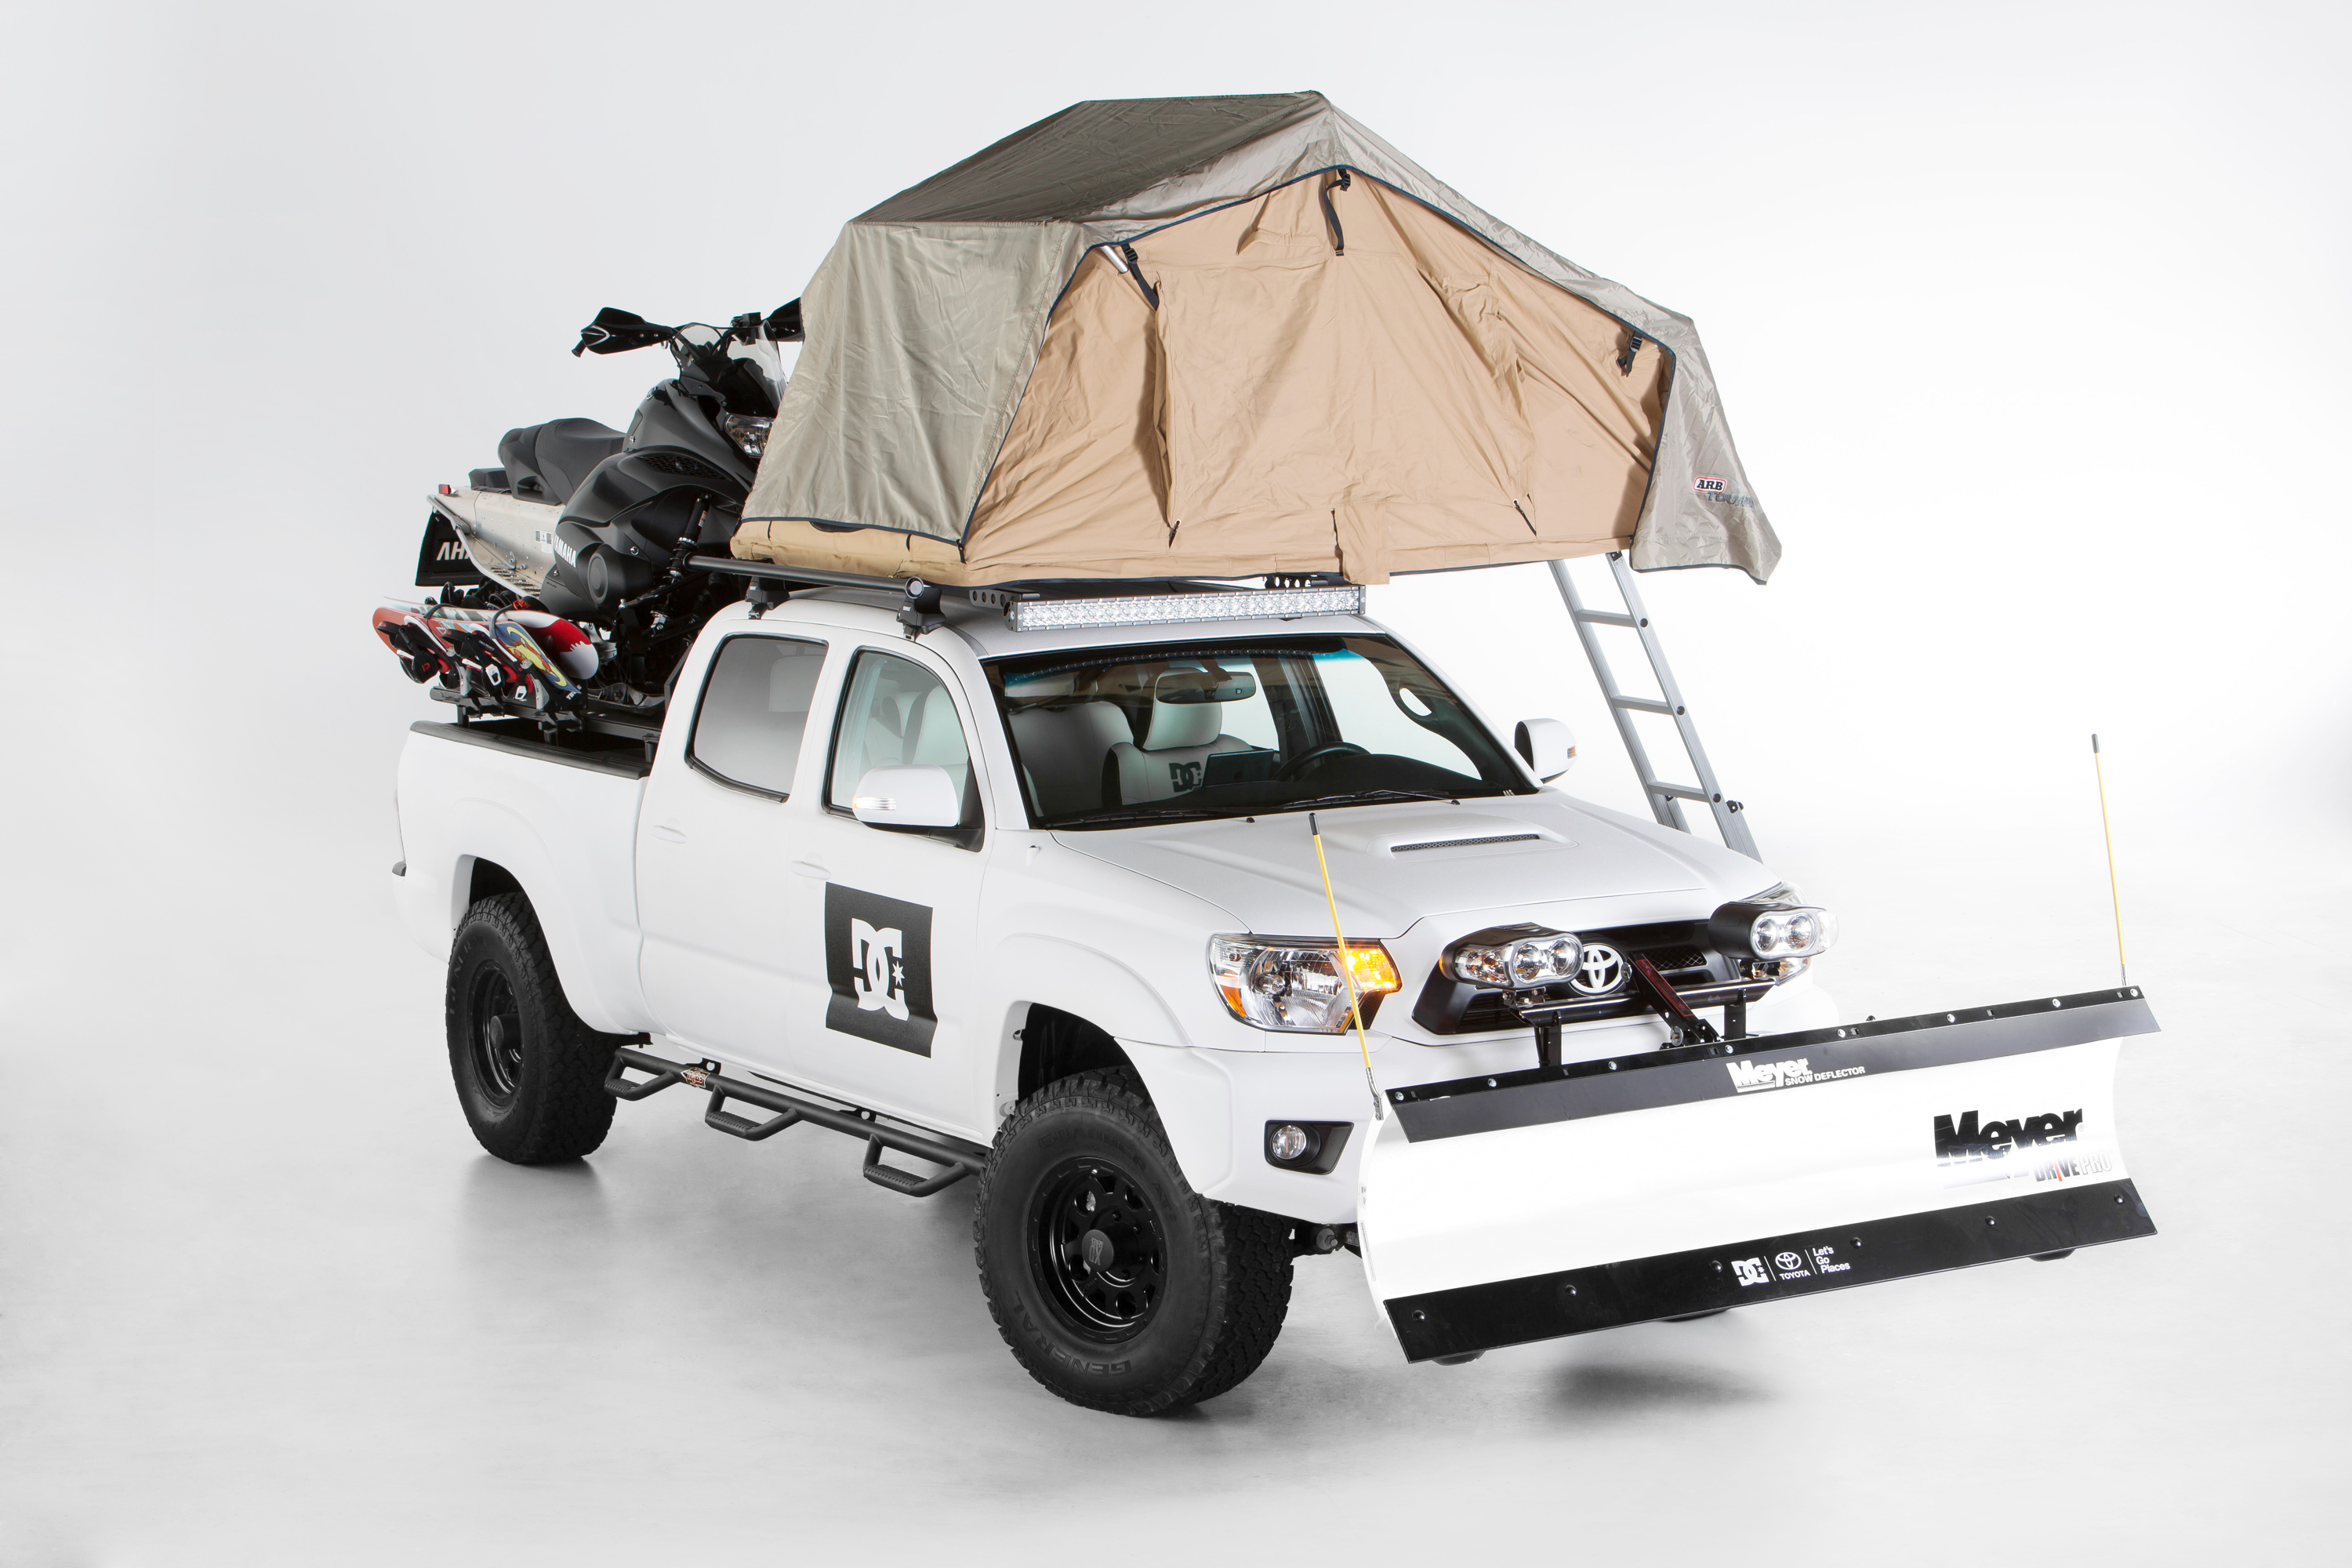 95a84ba3b215 2014 Toyota Tacoma By DC Shoes